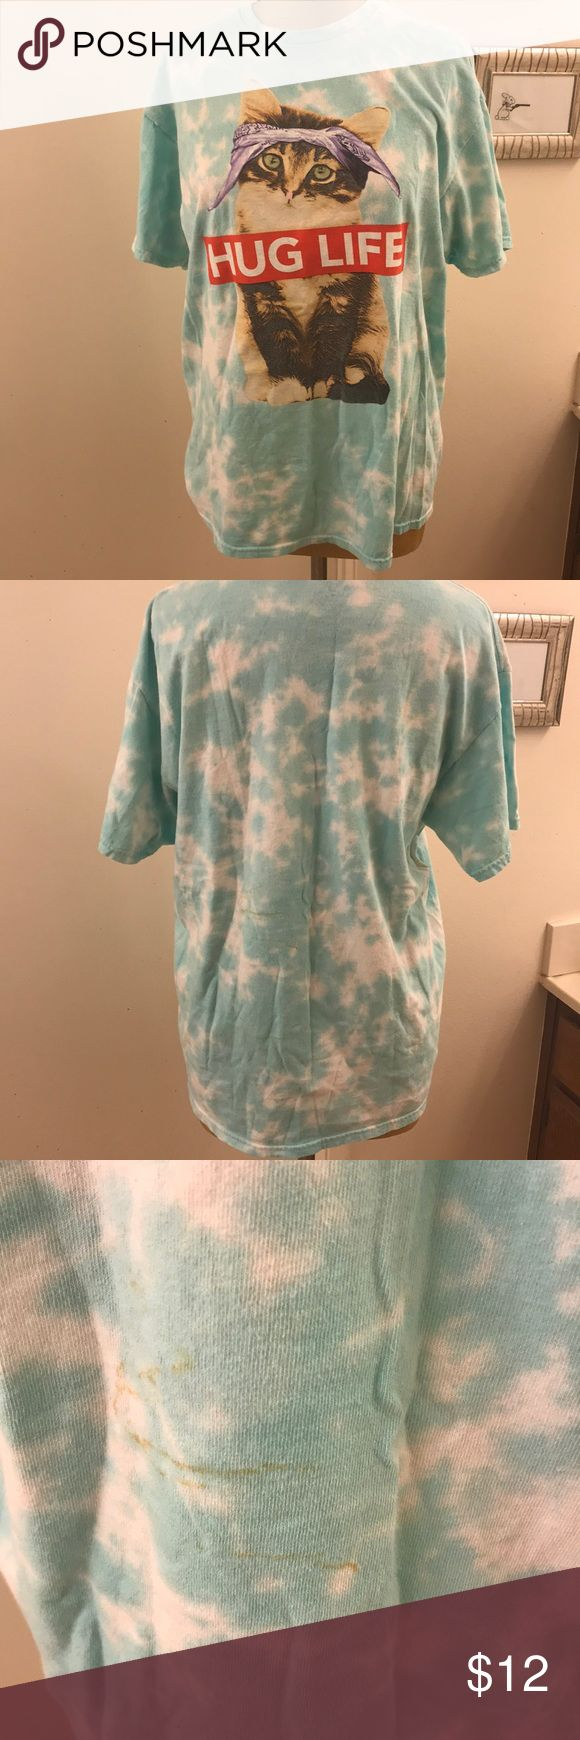 "HUG LIFE cat rapper tie dye t shirt. Tupac! Thug life hug life!  Excellent used condition   29"" Long  21"" armpit to armpit  Hippie tie dye look. Kitty cat Lady! dom Tops Tees - Short Sleeve"